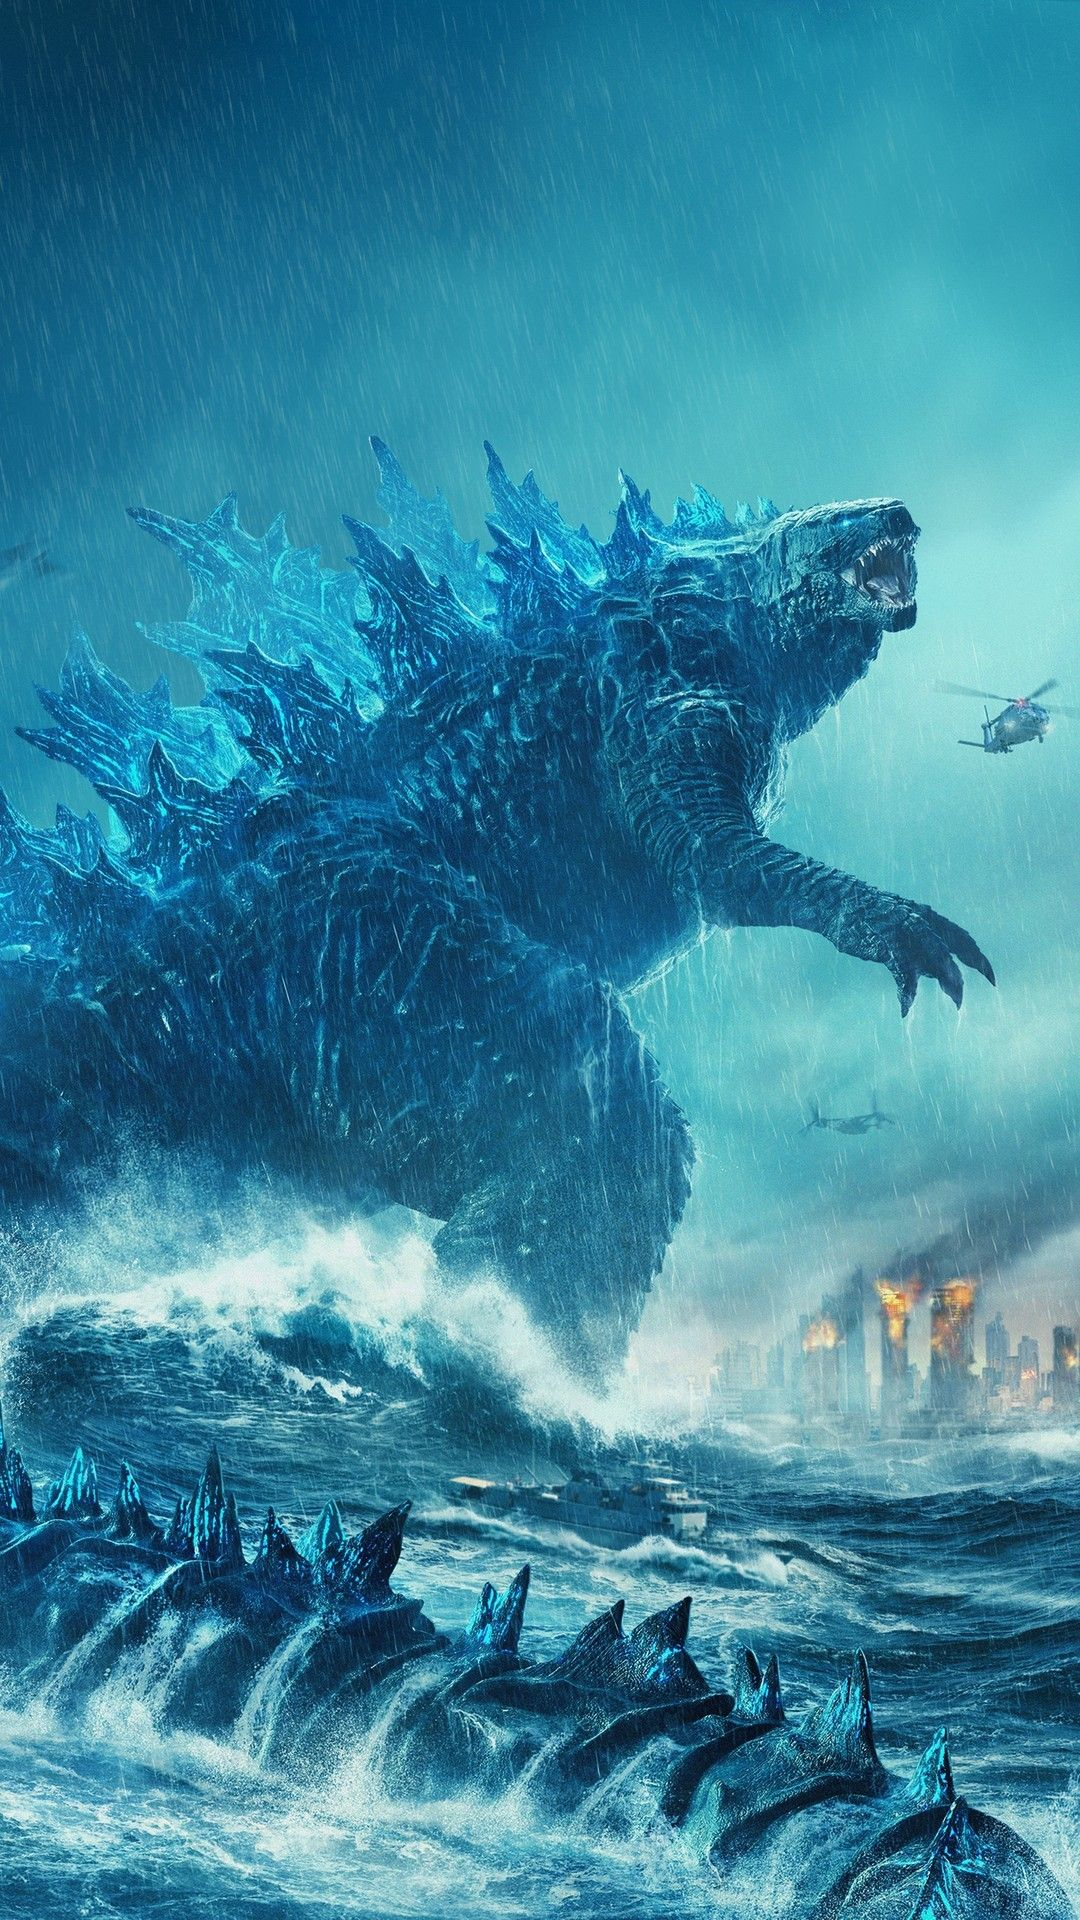 Godzilla King Of The Monsters Wallpaper For Iphone Best Iphone Wallpaper Godzilla Funny Godzilla Wallpaper Godzilla Vs King Ghidorah